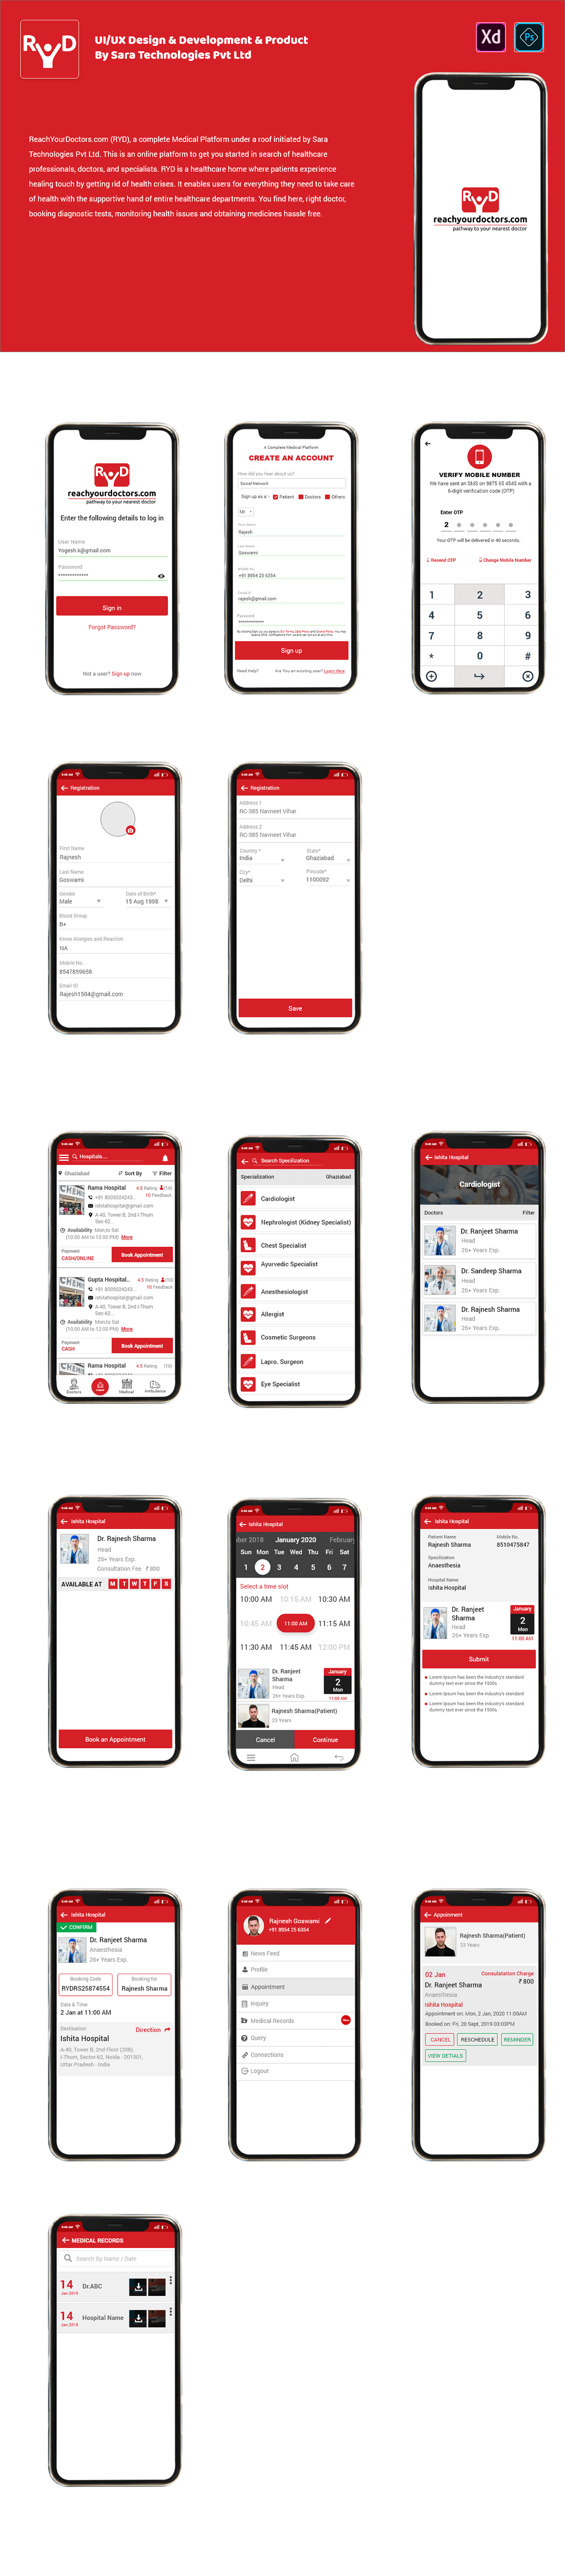 This App Design By Me With Working Sara Technologies Pvt Ltd. This is an online platform.